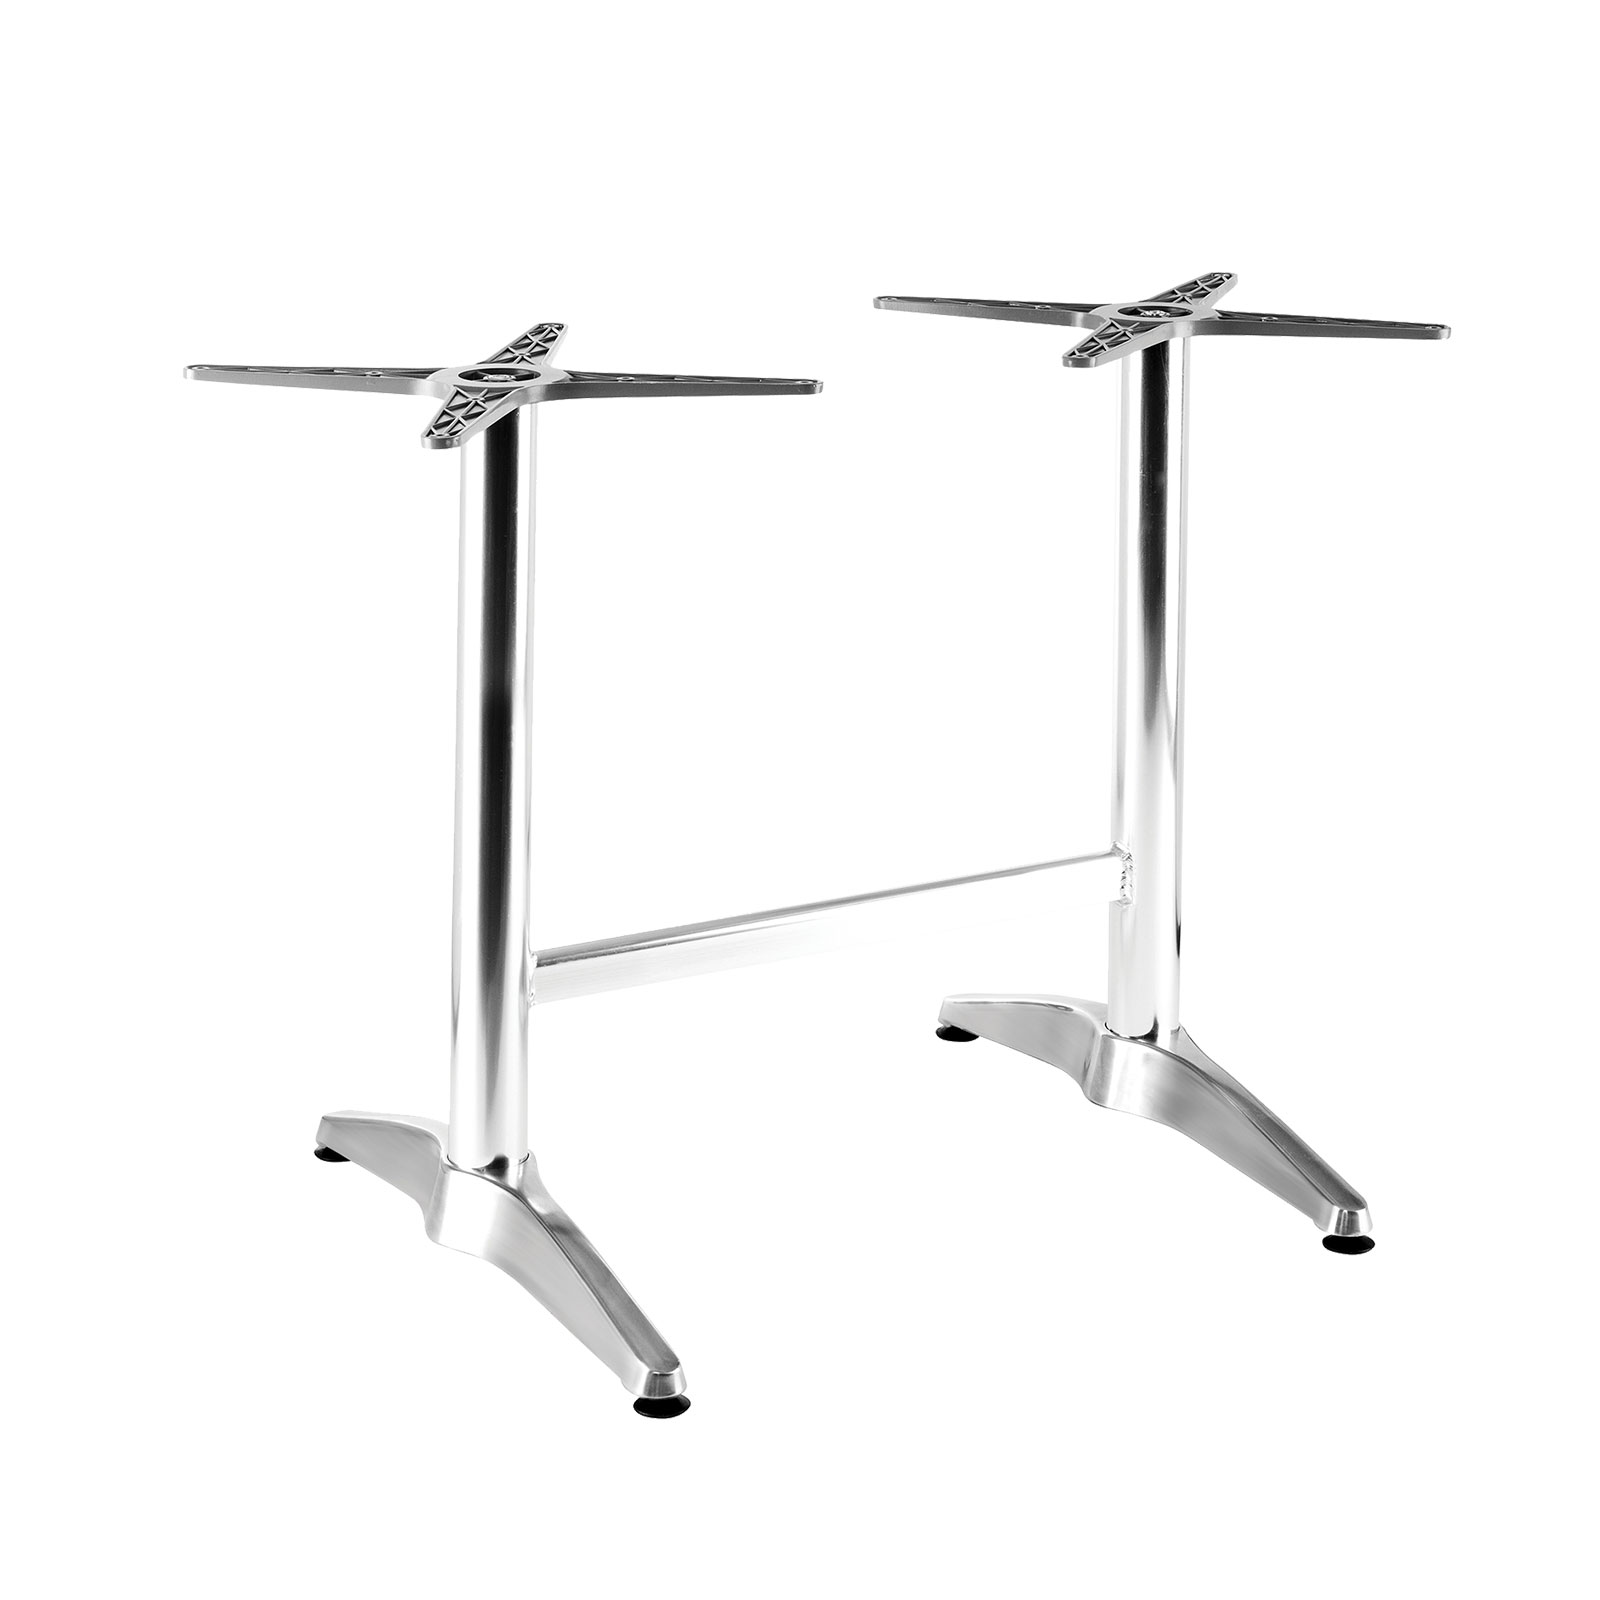 G & A Commercial Seating AB2723 table base, metal